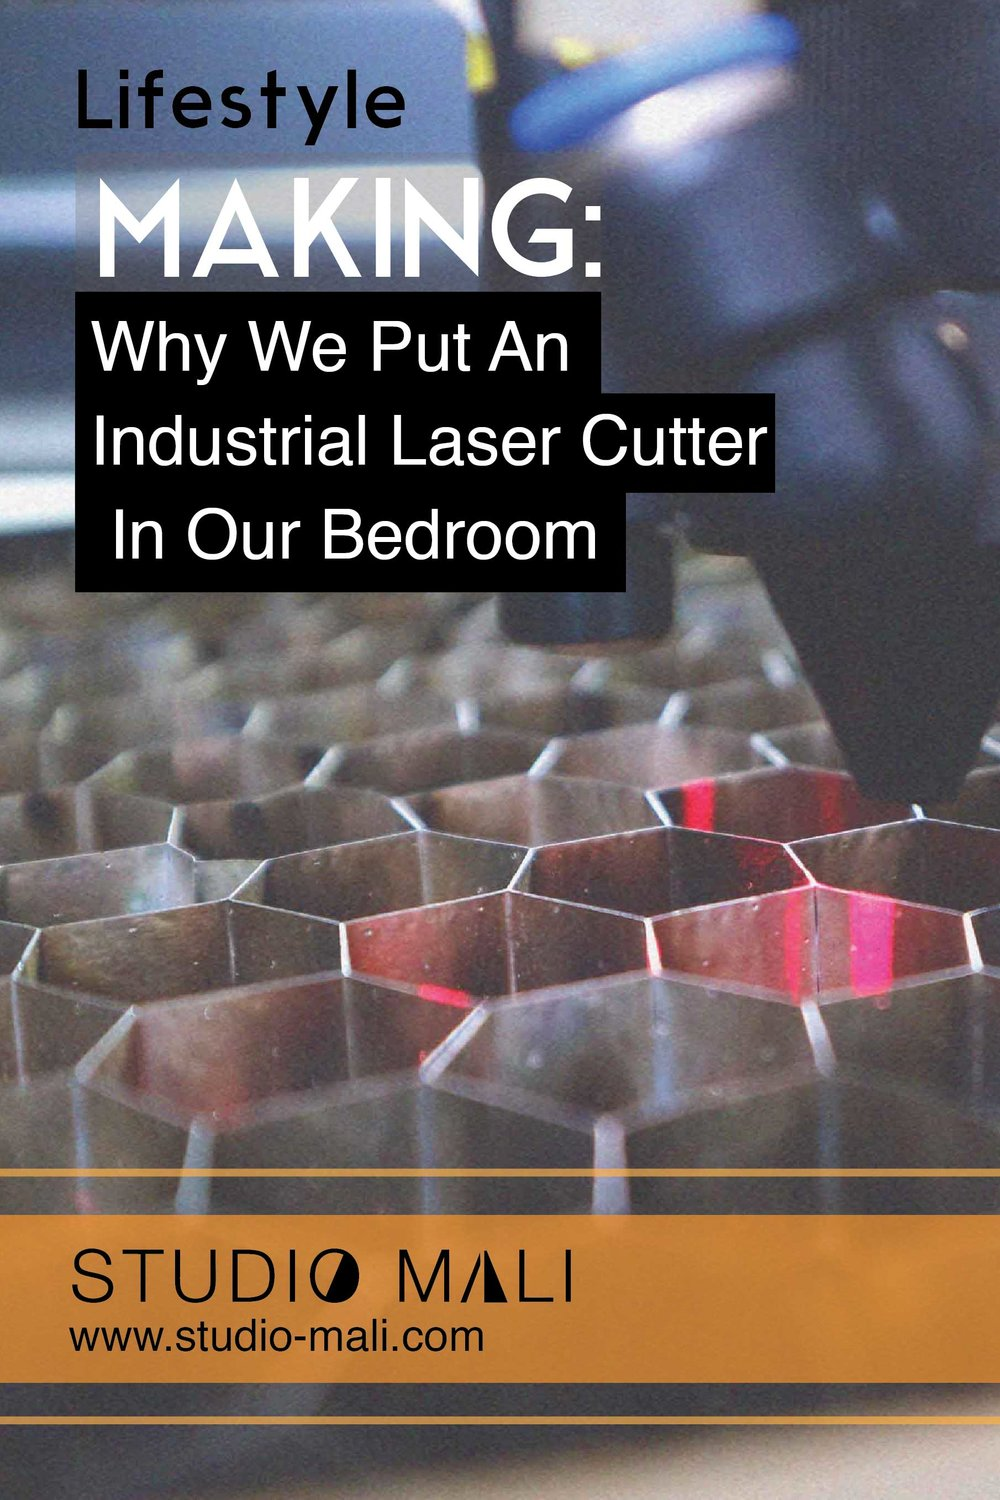 Lifestyle: Why We Put An Industrial Laser Cutter In Our Bedroom, By Studio Mali